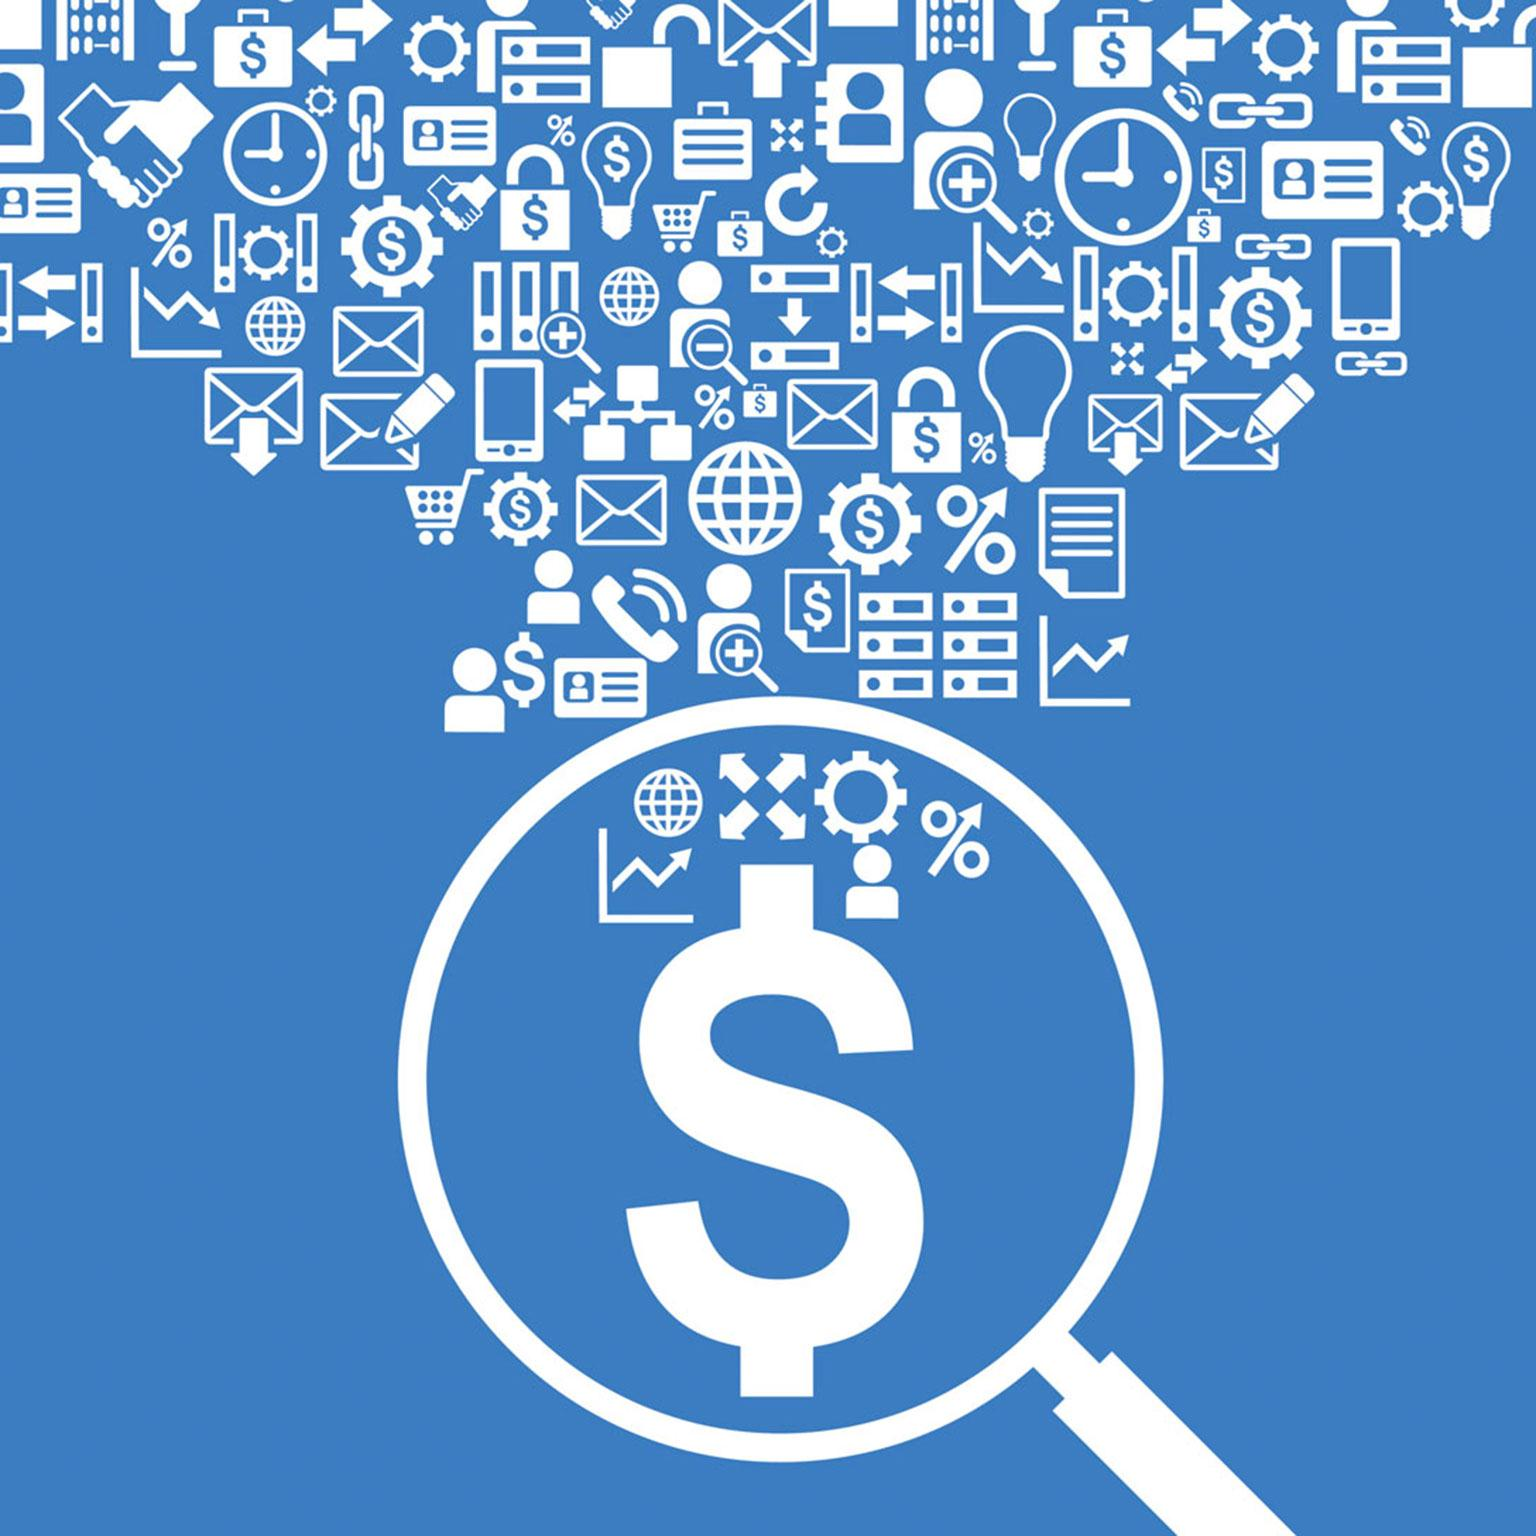 Pricing >> Using Big Data To Make Better Pricing Decisions Mckinsey